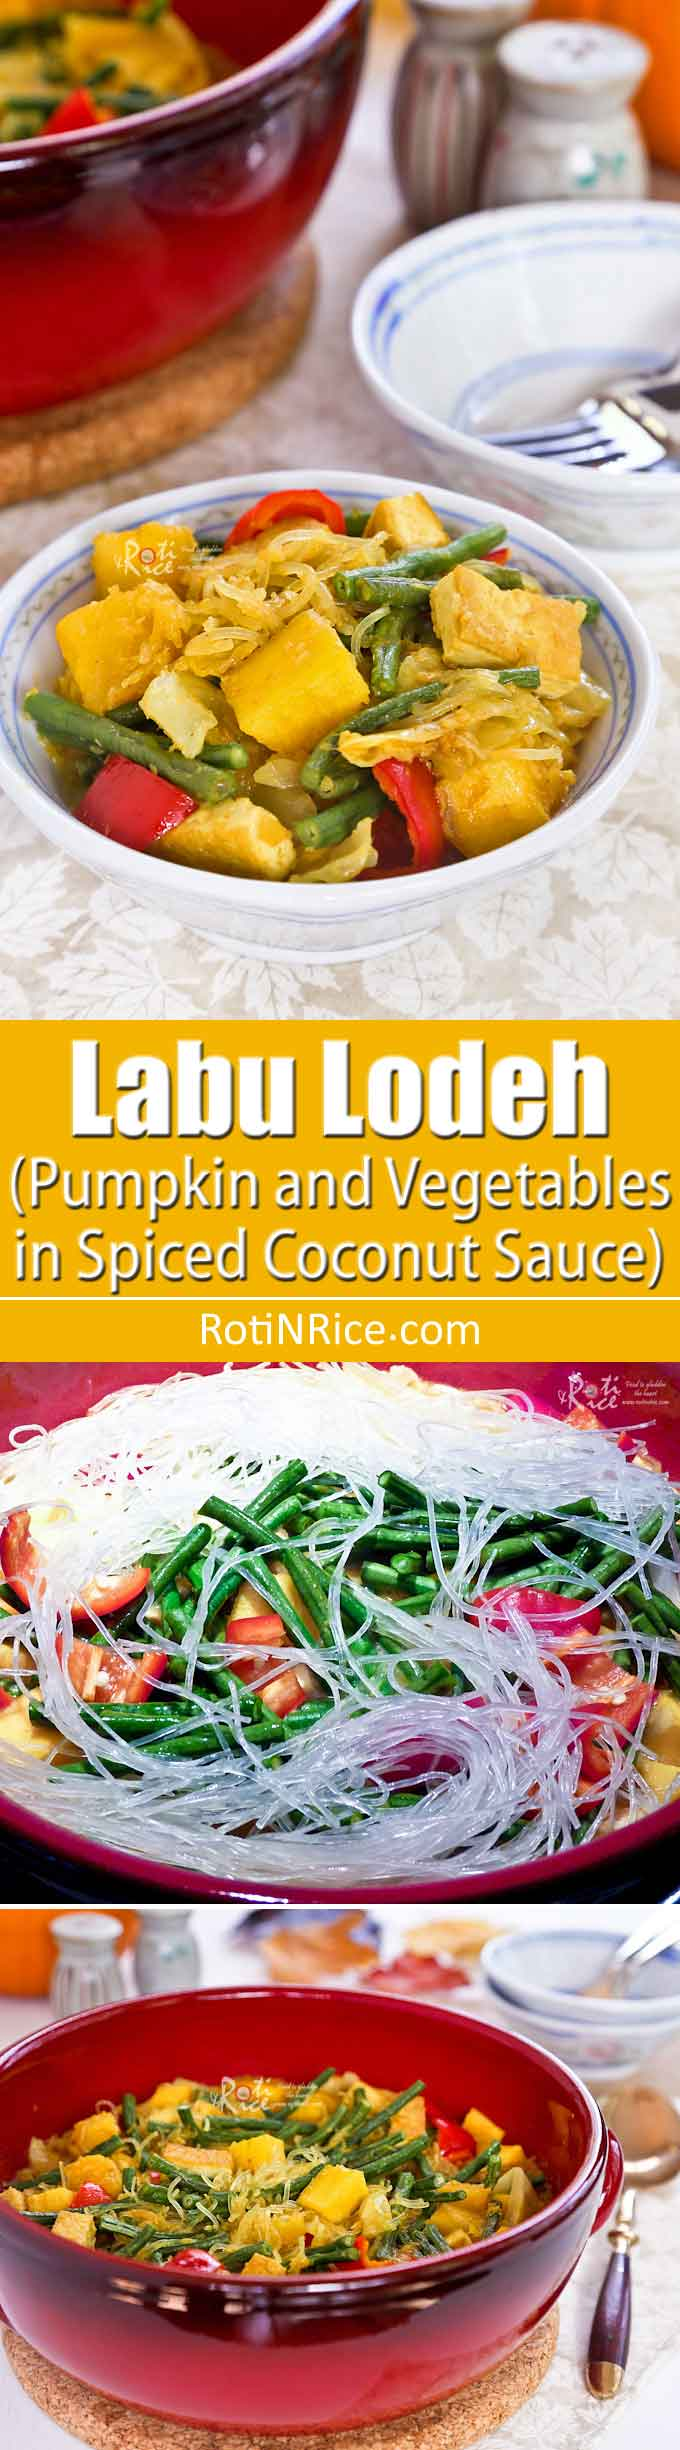 This Labu Lodeh is based on the popular Indonesian sayur lodeh with the addition of cubed pumpkin to the mix of vegetables simmered in coconut milk. | RotiNRice.com